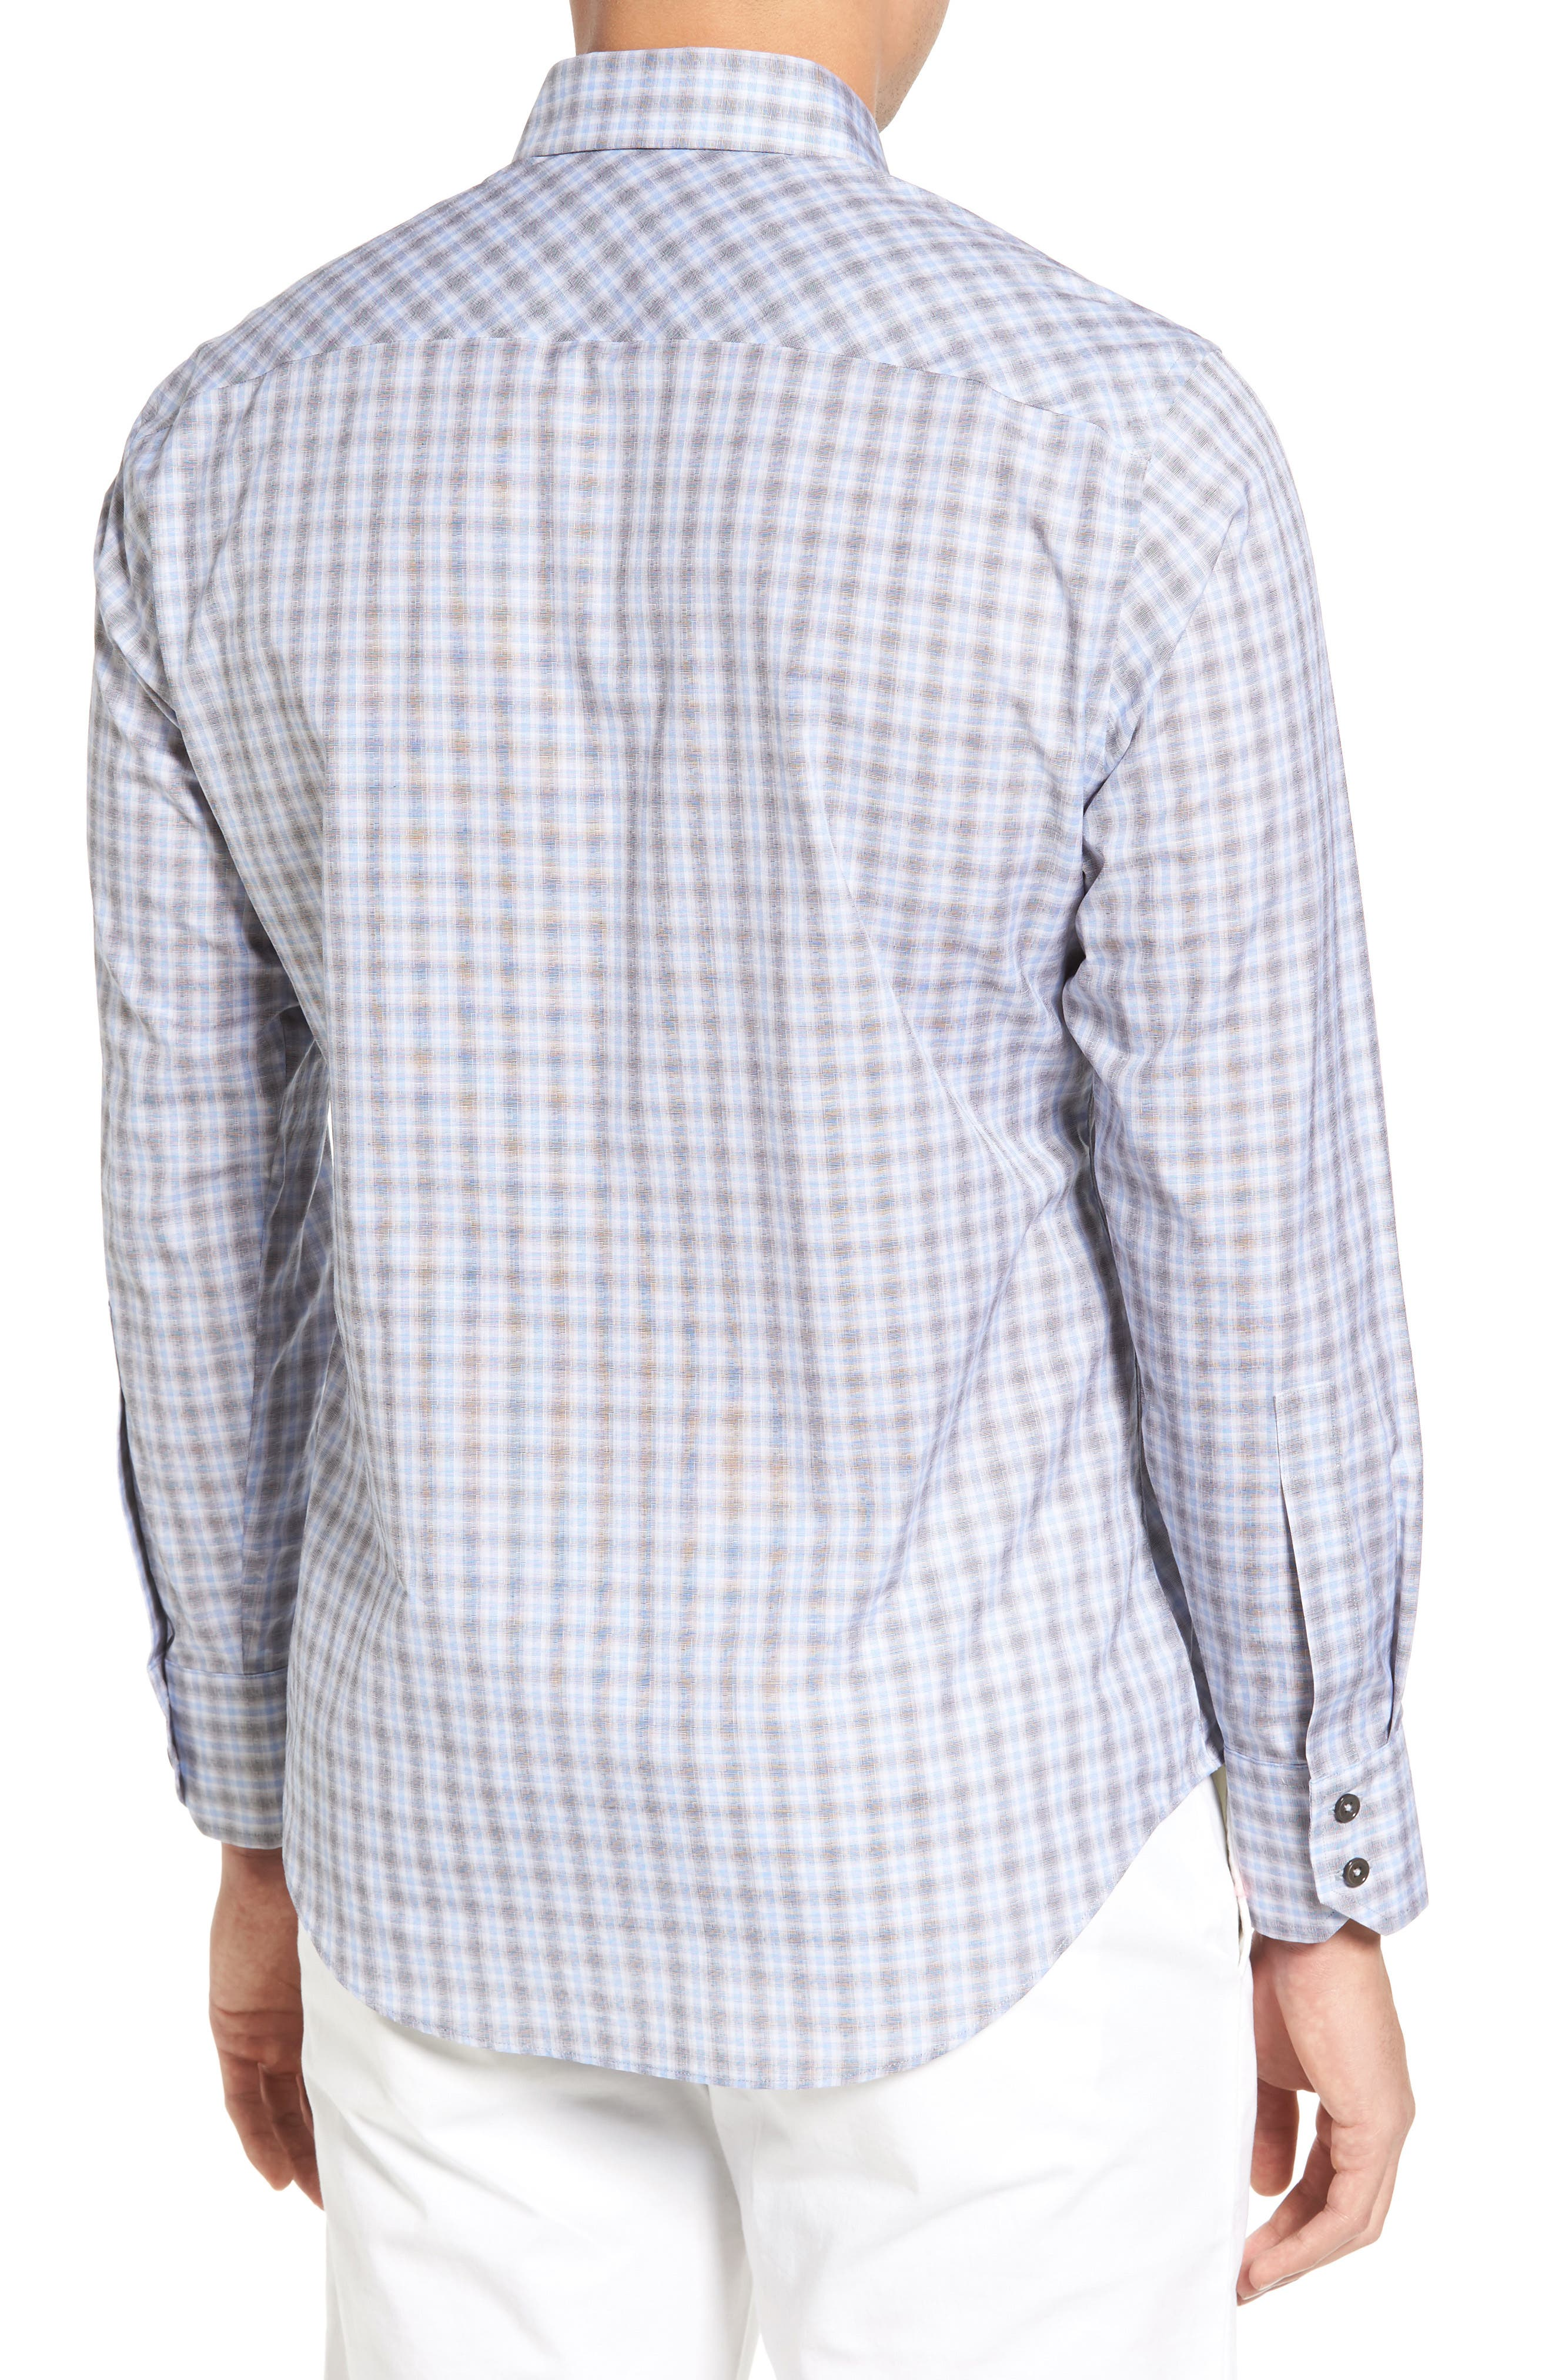 Cristiano Trim Fit Plaid Sport Shirt,                             Alternate thumbnail 2, color,                             Grey